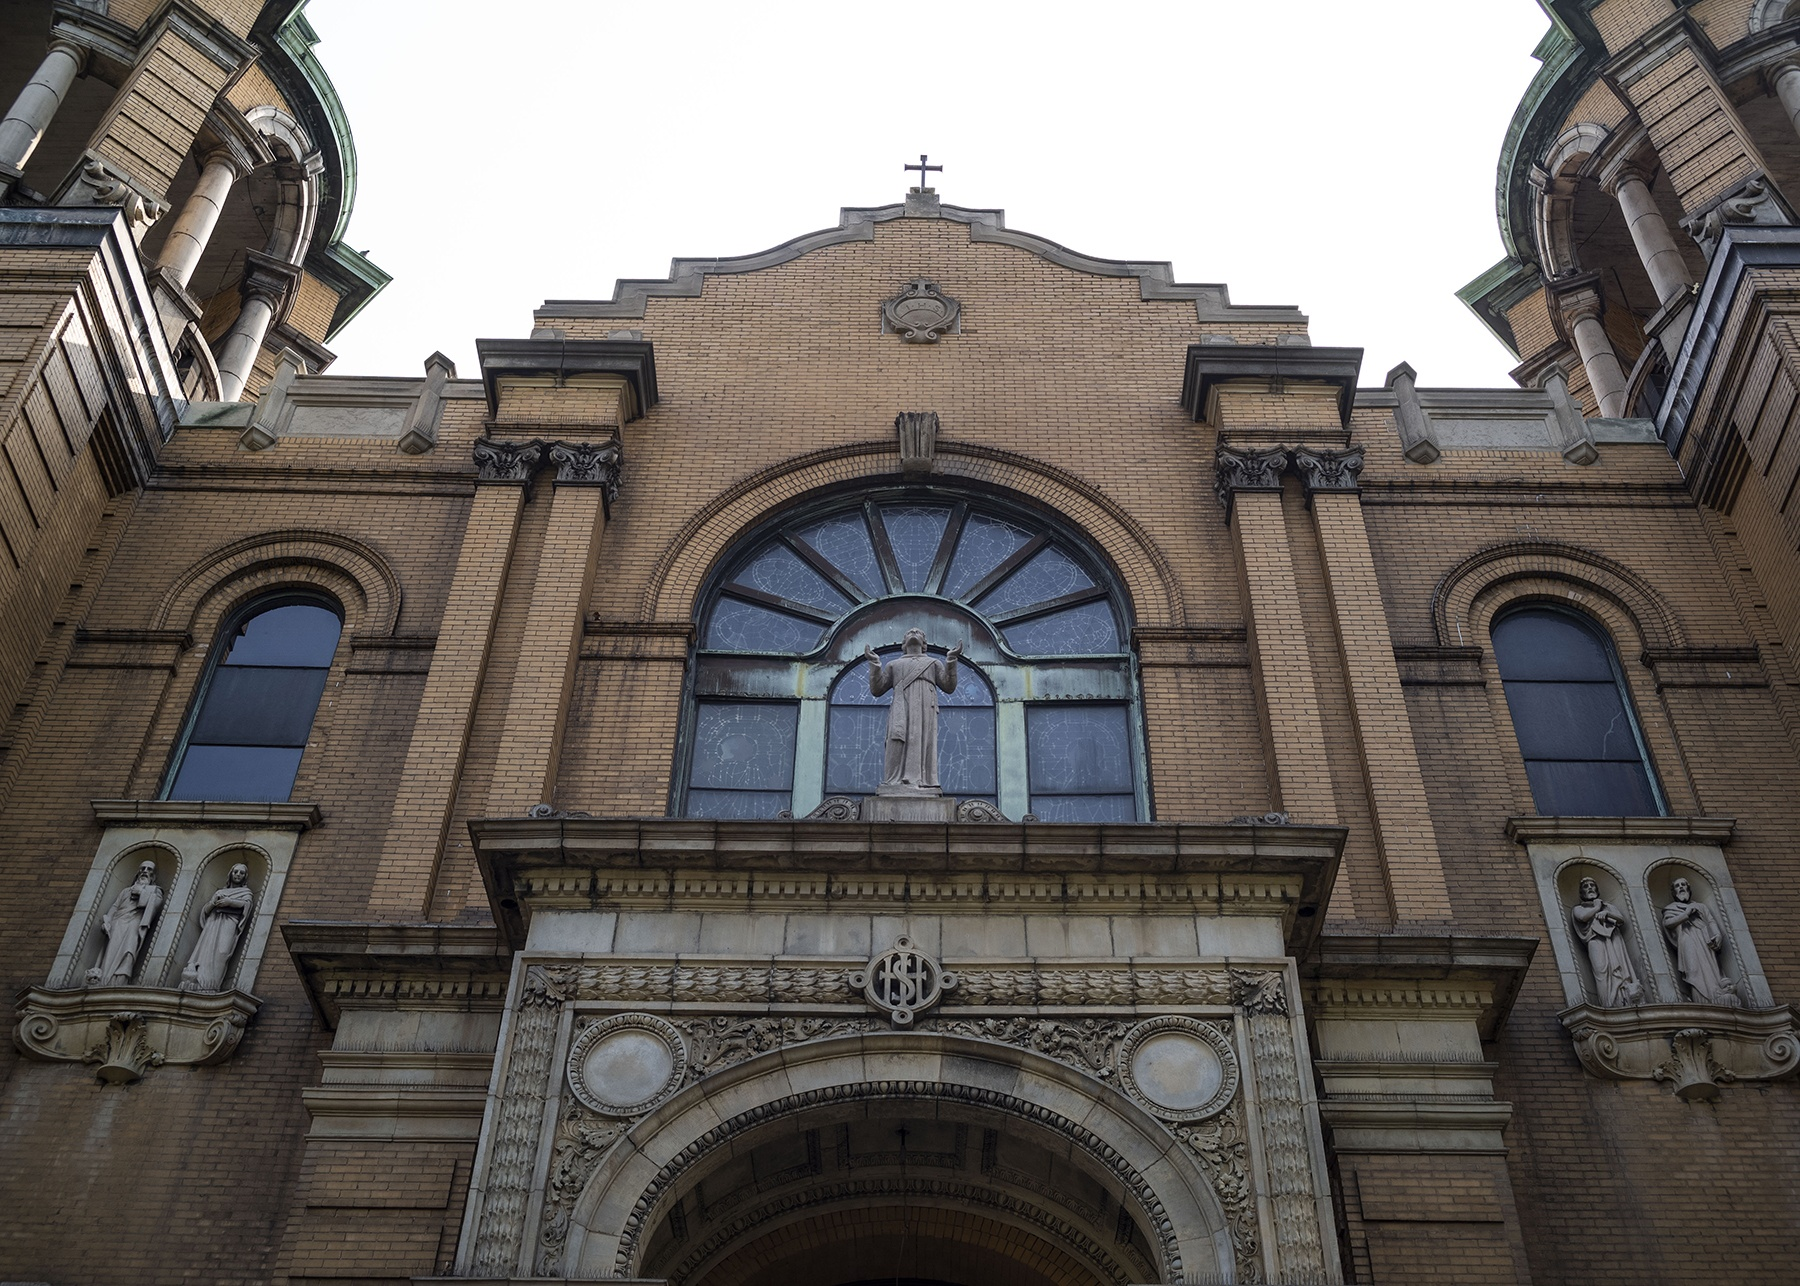 A robed statue keeps watch over the entrance to St. Stephen Catholic Church.